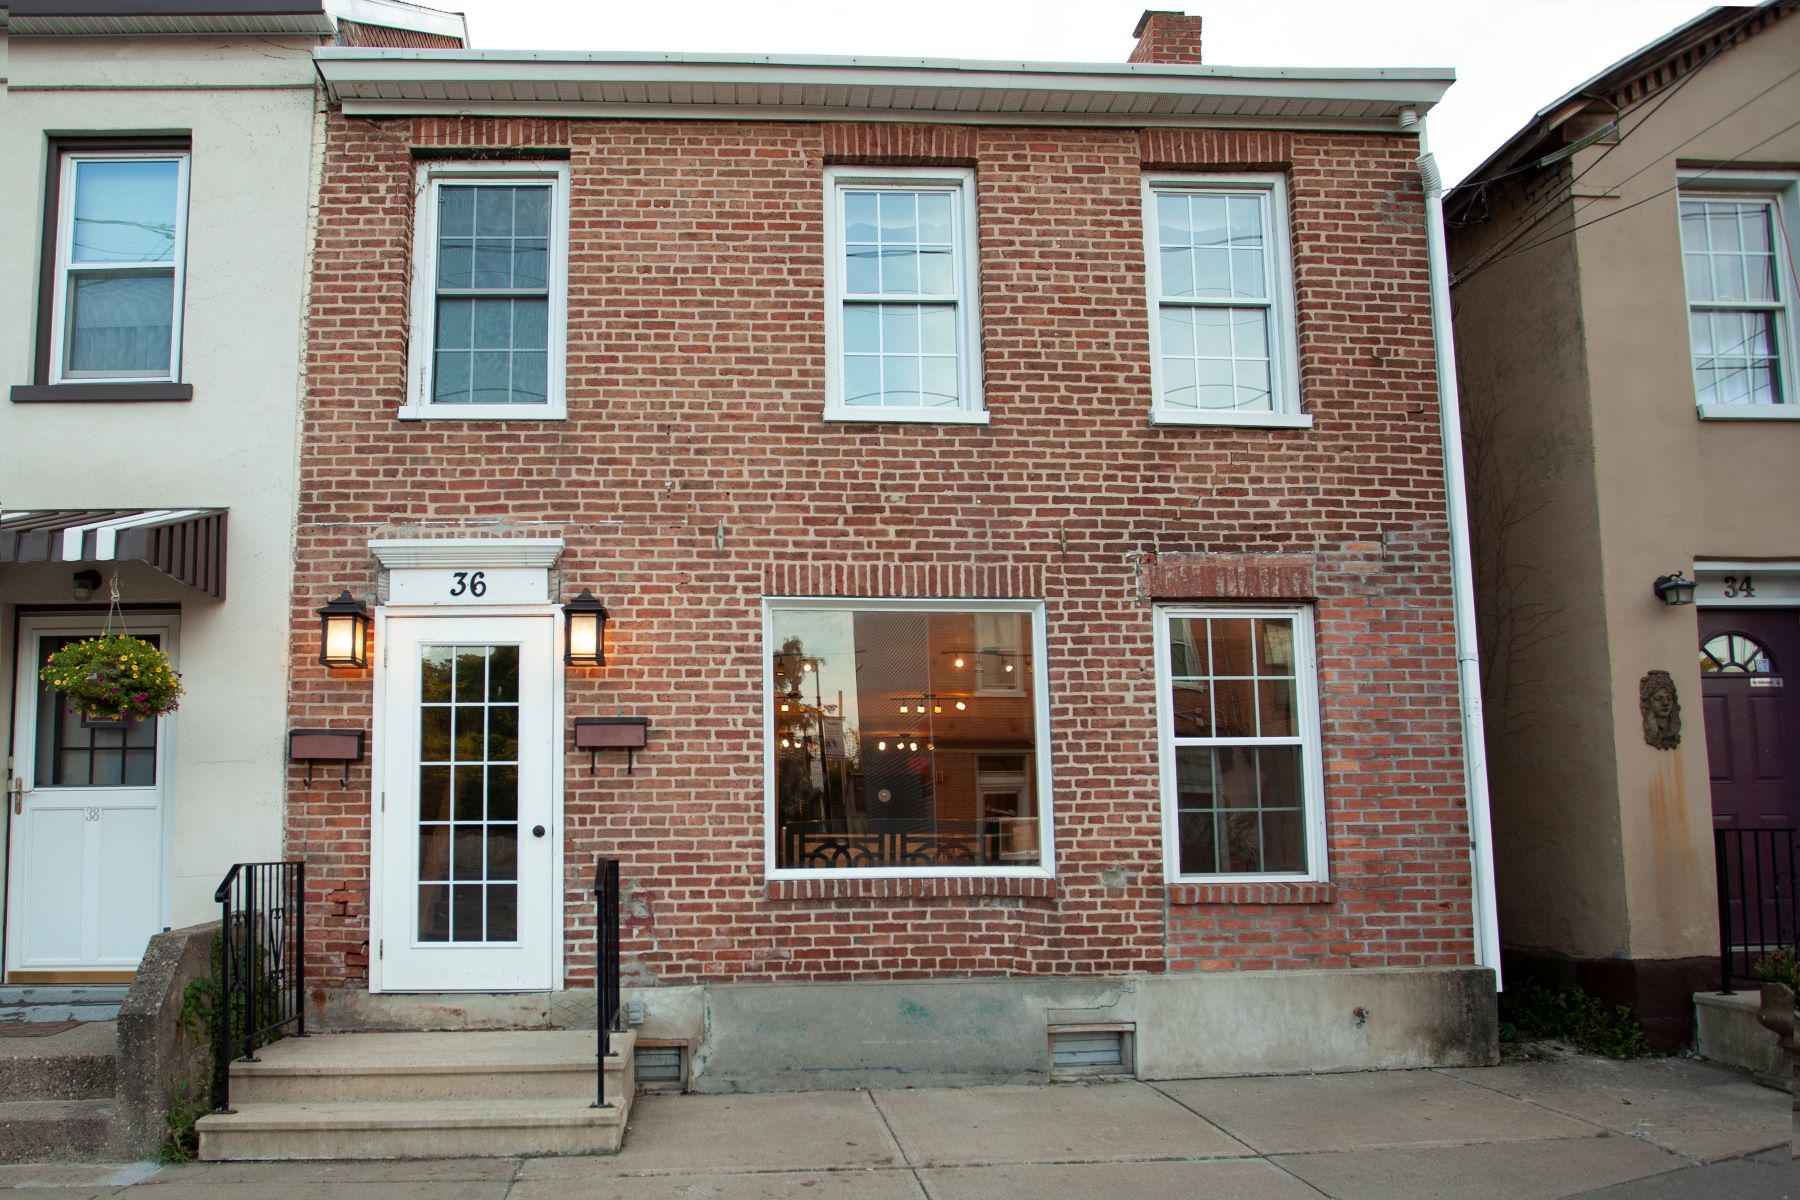 Multi-Family Homes for Sale at Mixed-Use Building in Schenectady's Little Italy 36 North Jay St Schenectady, New York 12305 United States